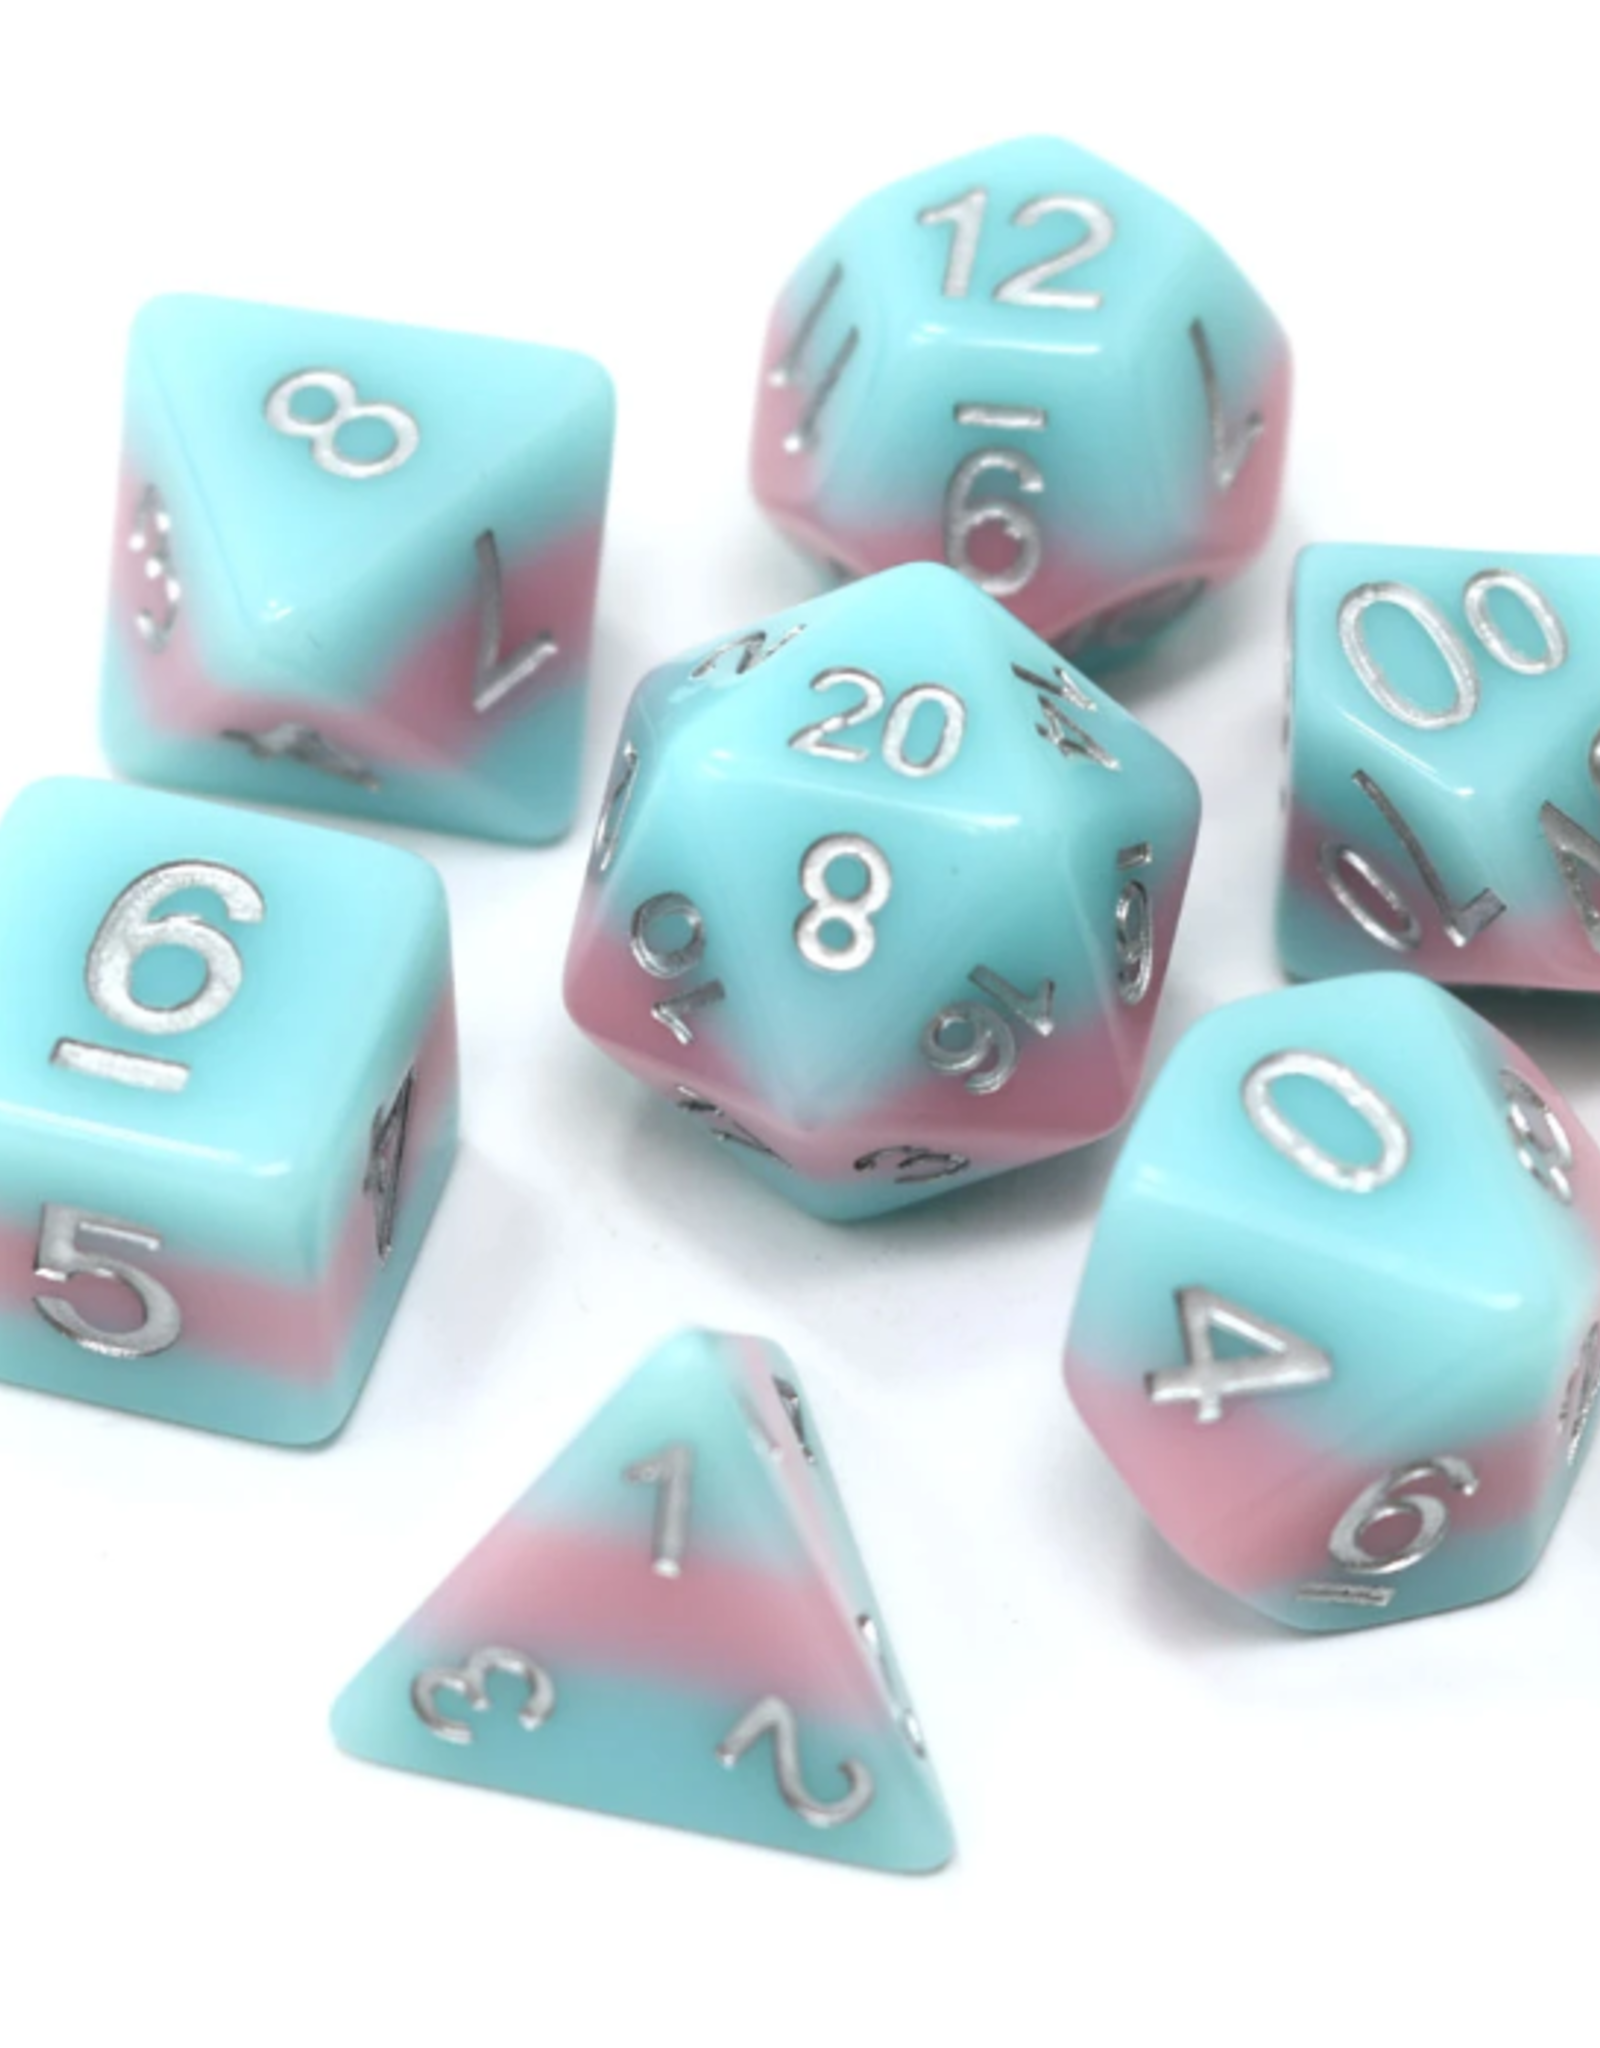 Die Hard Dice Poly Dice Set Metamorphosis